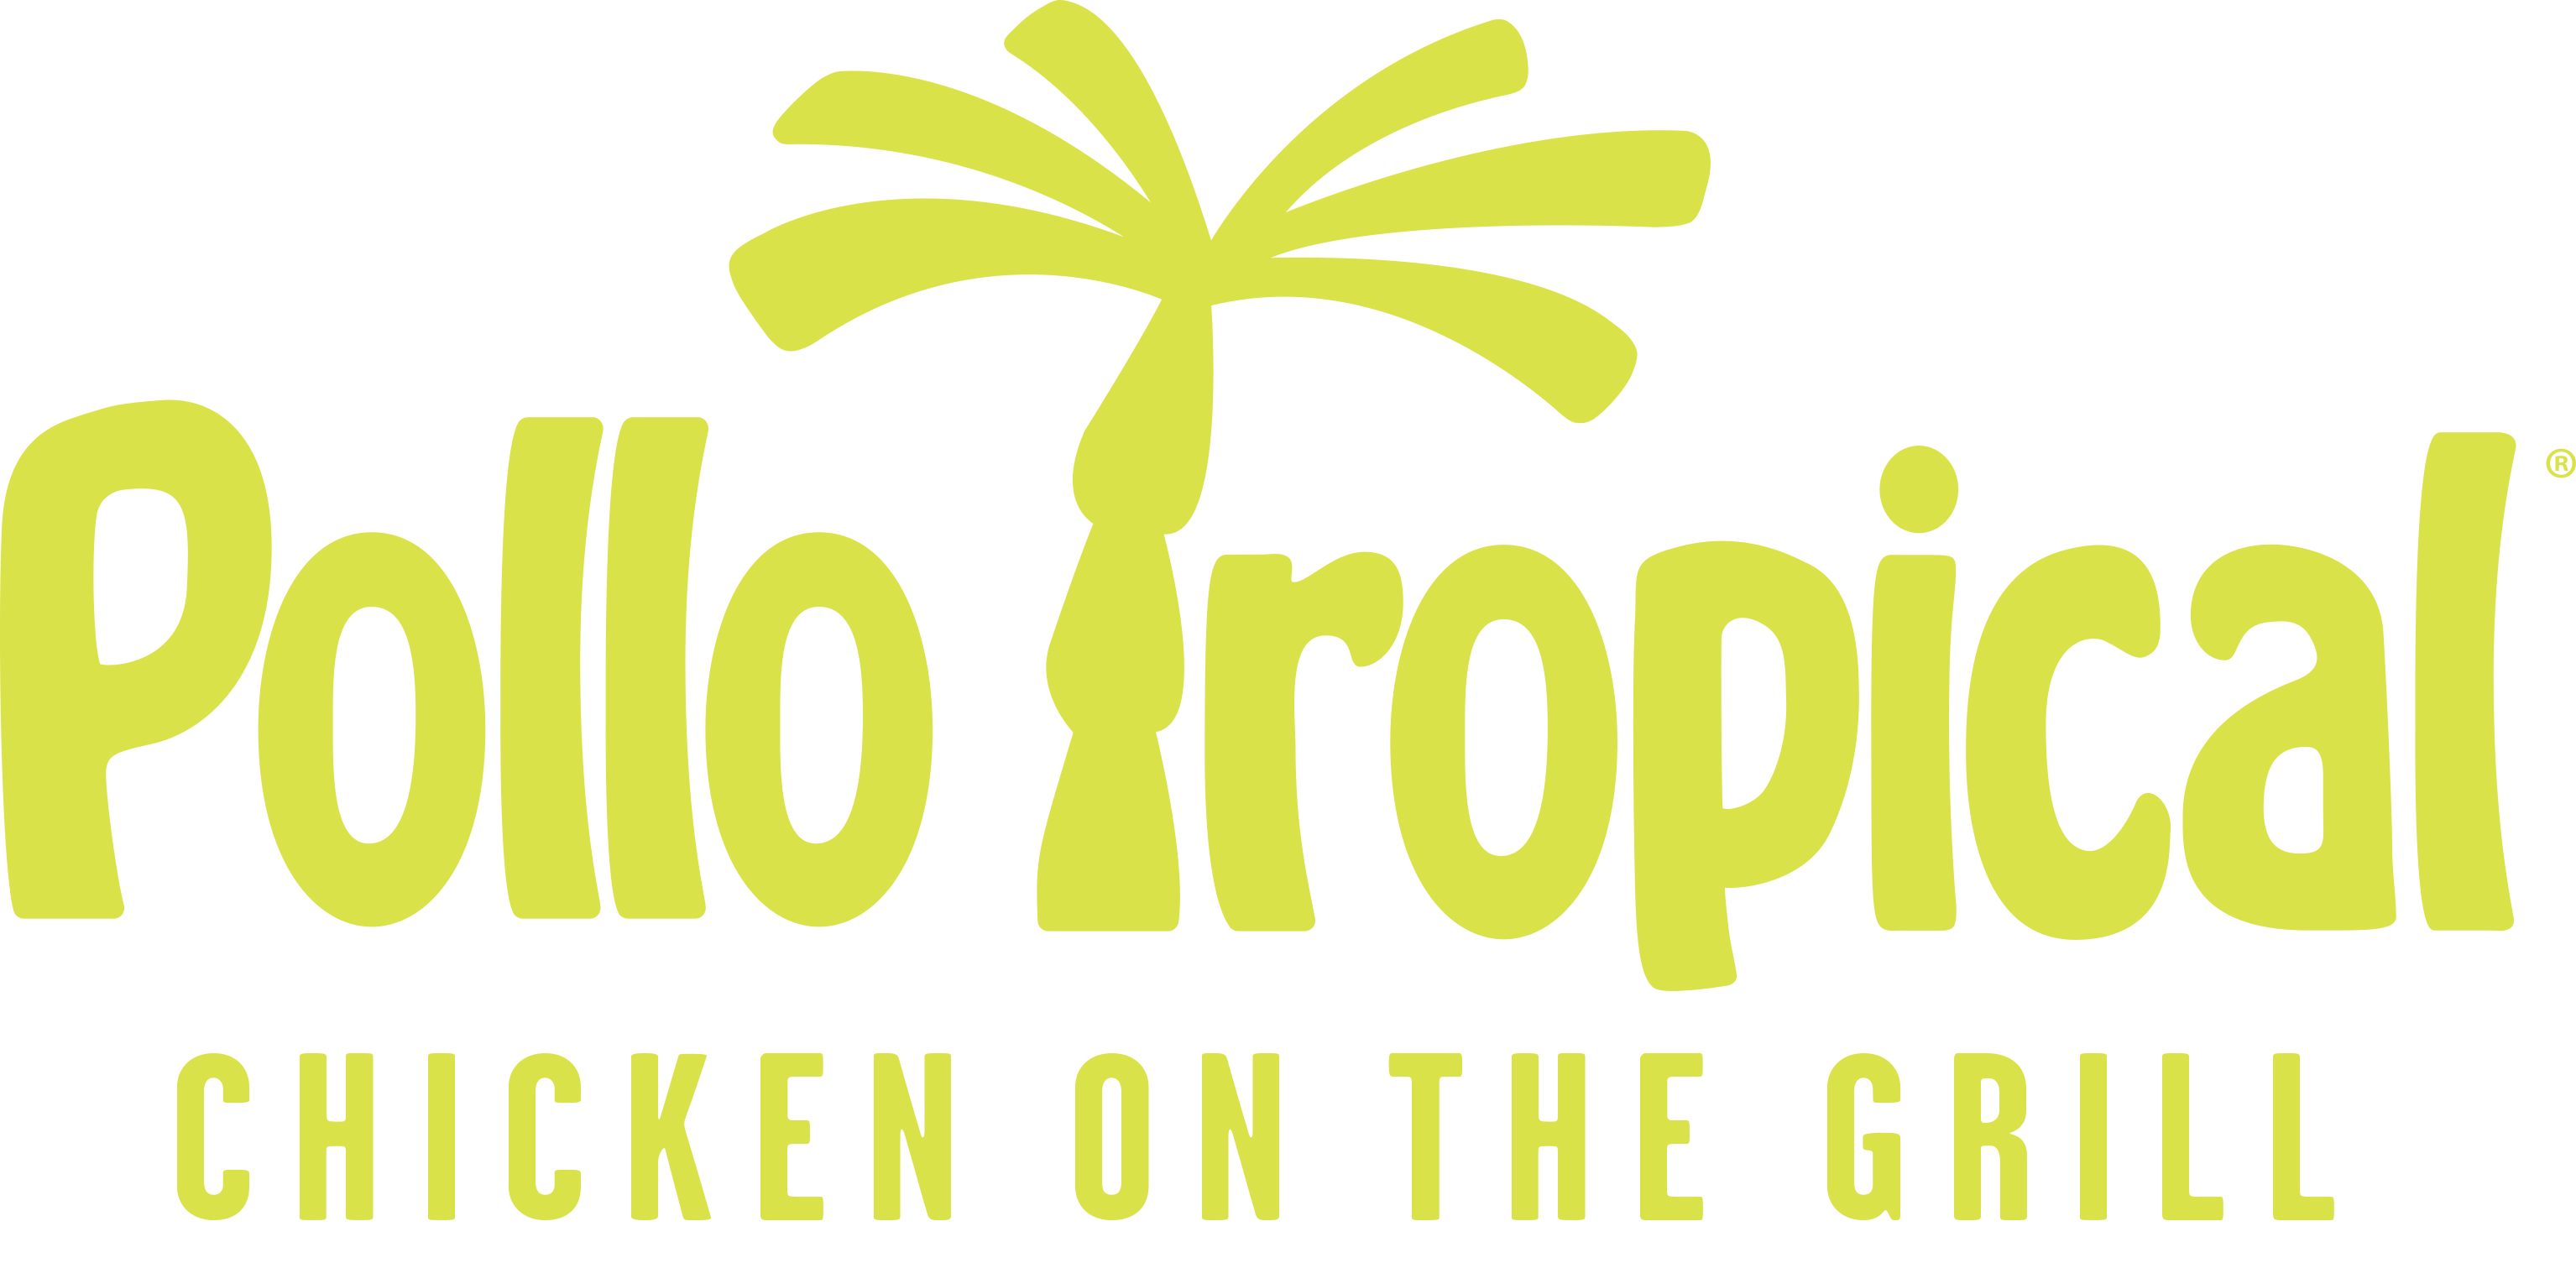 Logos . Pollo tropical logo png picture freeuse stock